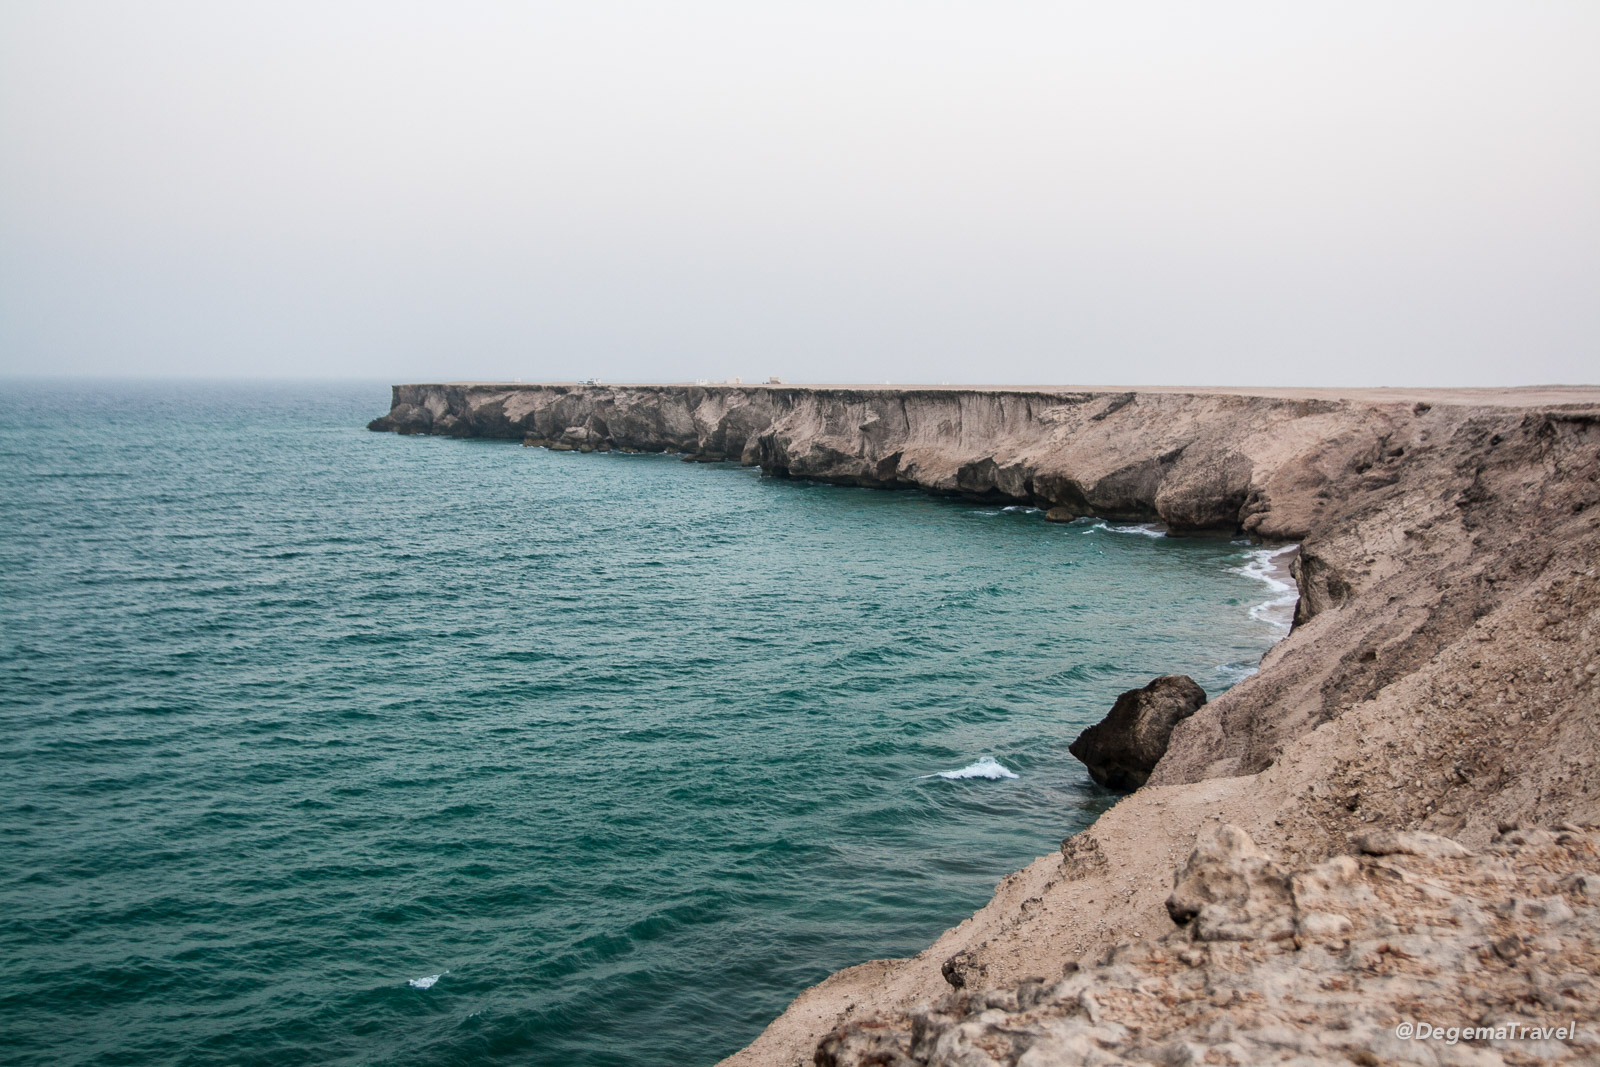 Coastal cliffs near Ad Daffah, Oman